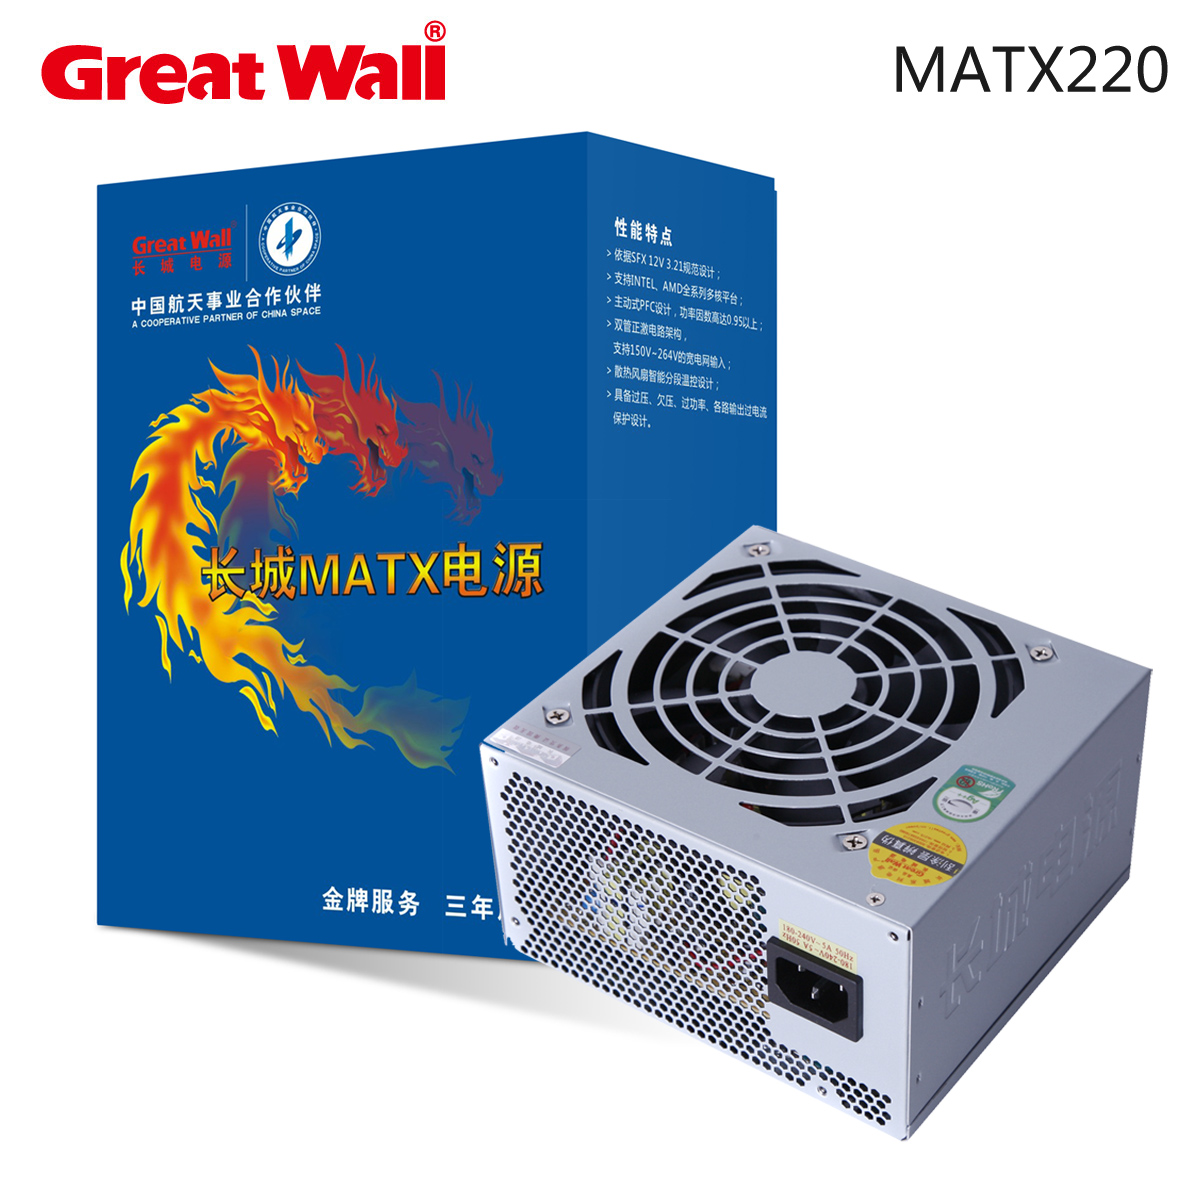 Great Wall MATX220 Desktop Computer SFX Small Cabinet Power Supply Micromini Small Power Computer Integration